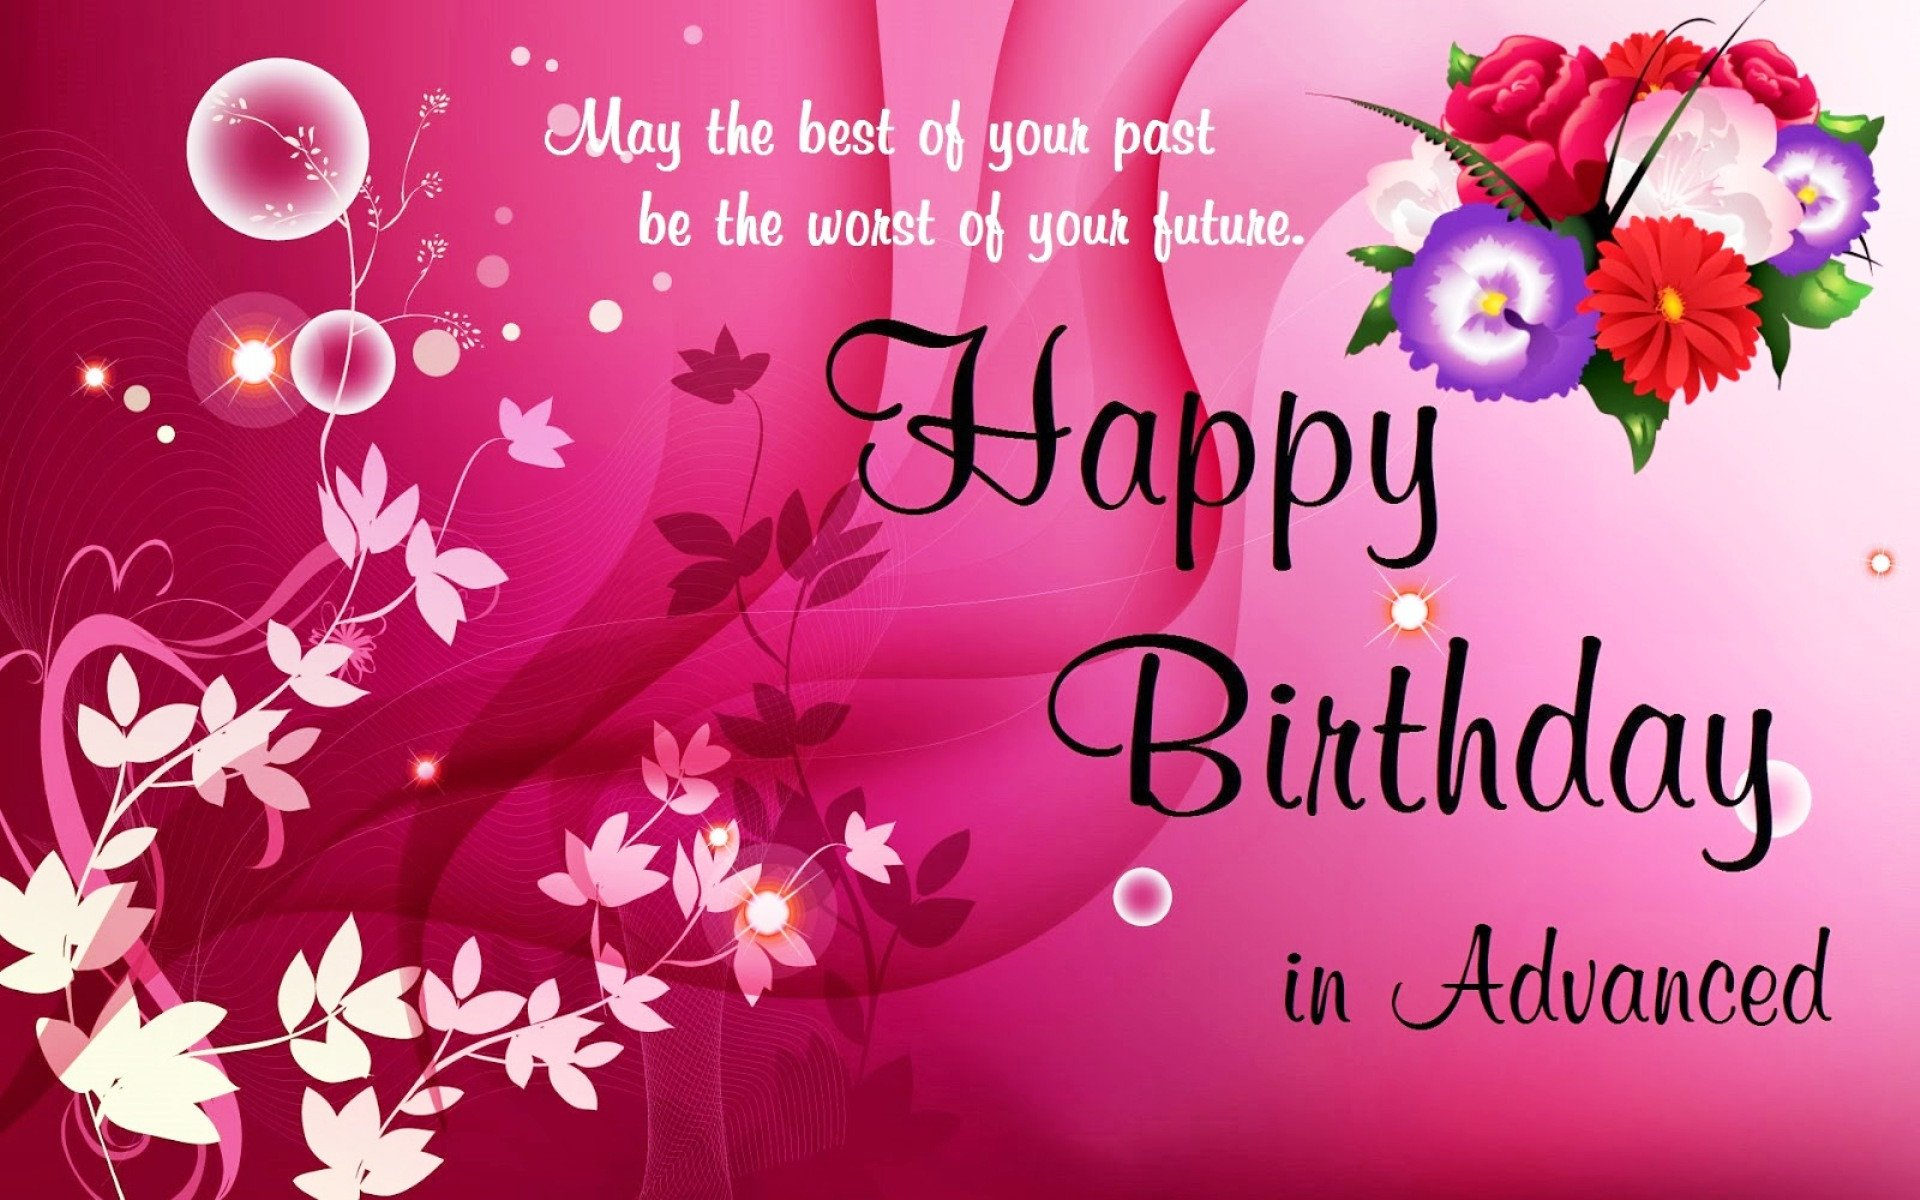 Happy Birthday High Definition Happy Birthday In Advance Wishes Wallpapers 4k